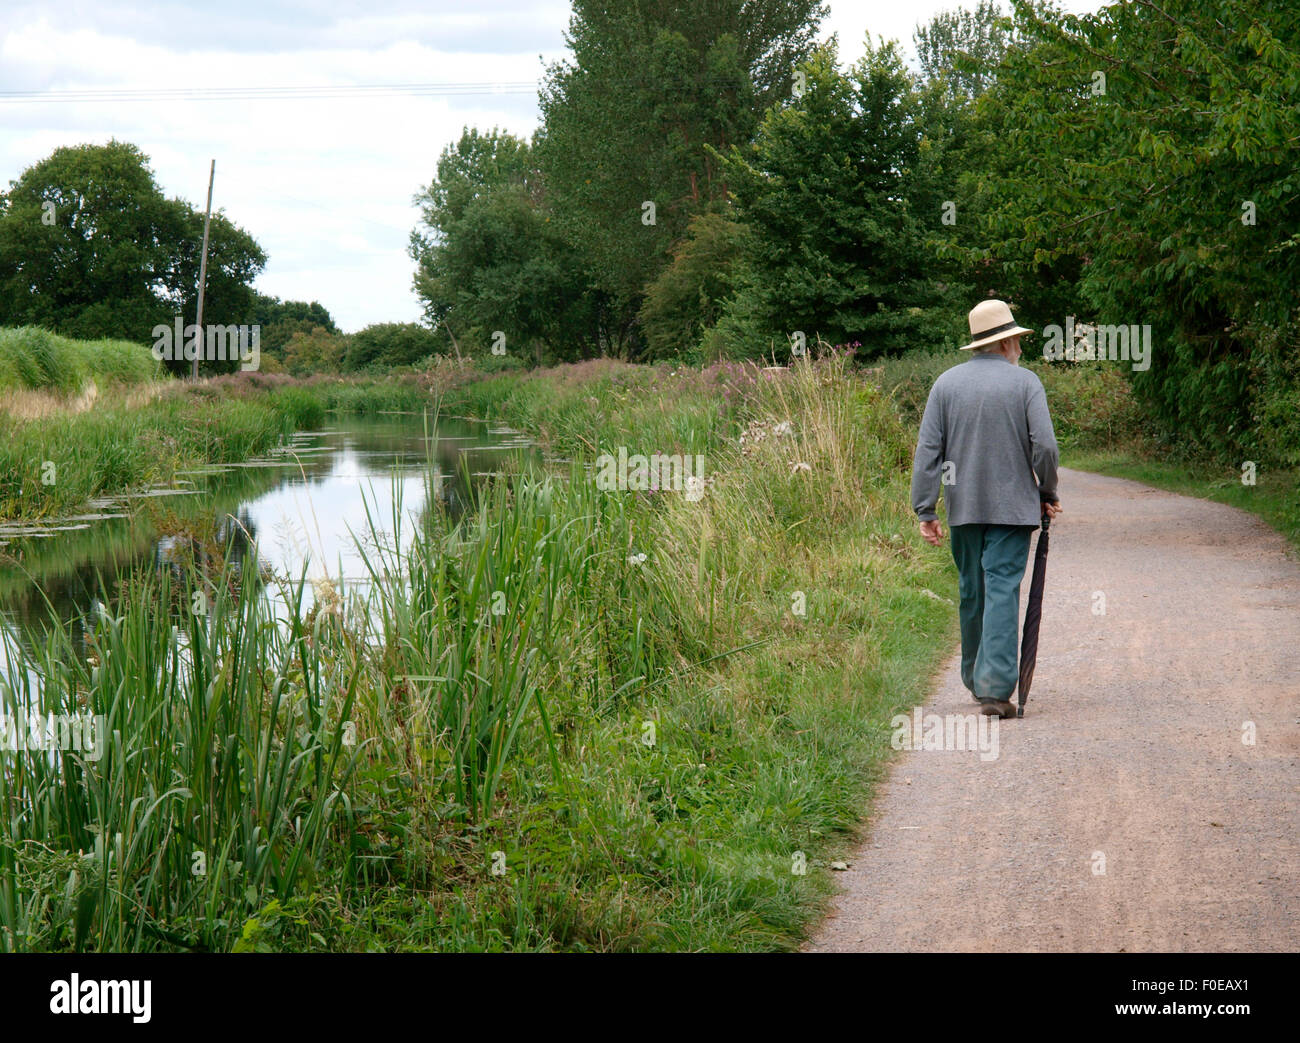 Senior citizen strolling along the towpath of the Bridgwater and Taunton Canal, Somerset, UK - Stock Image